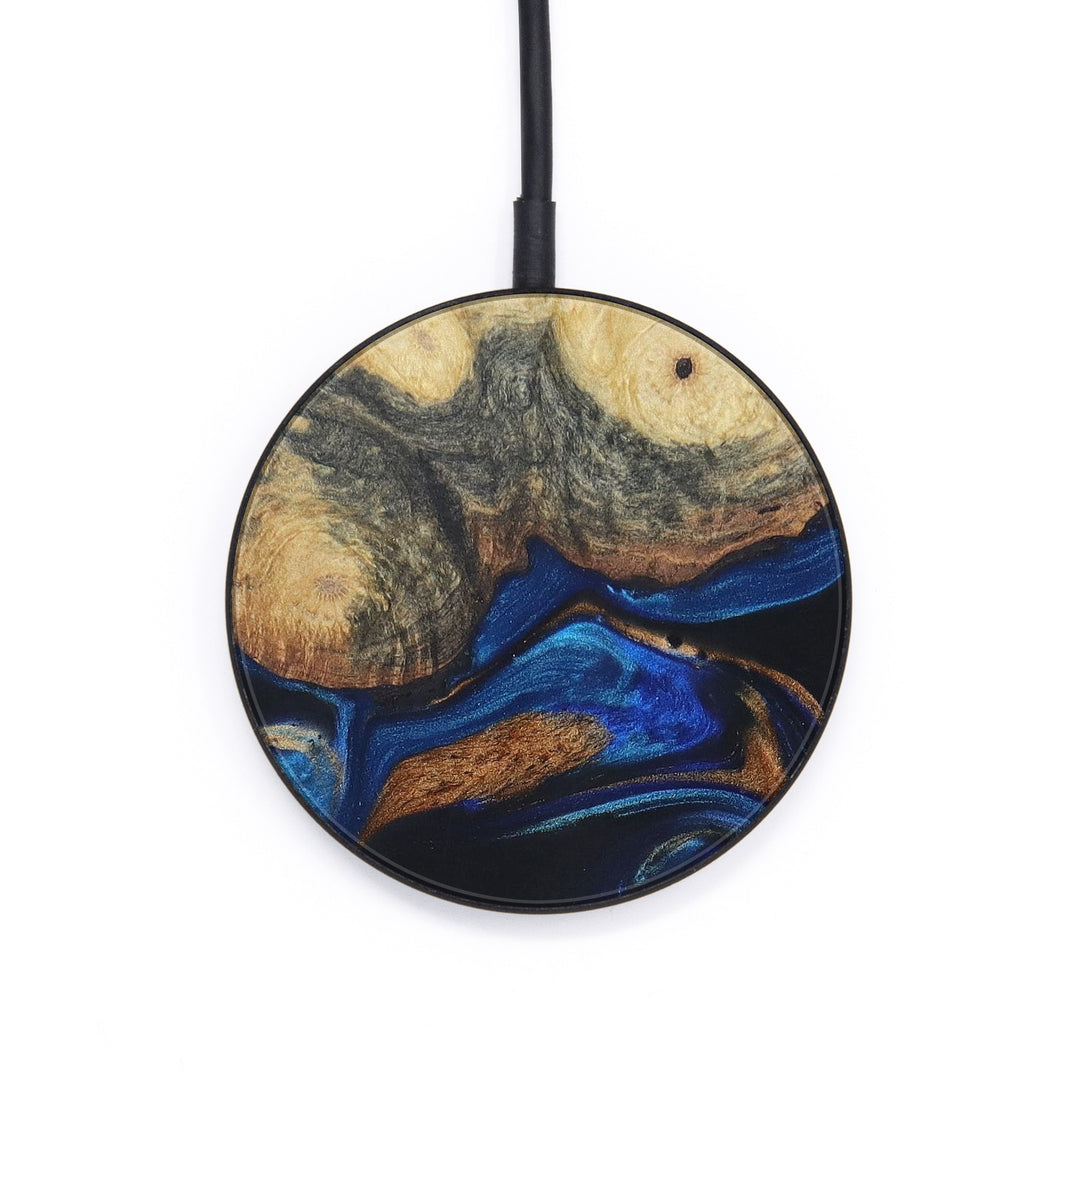 Circle Wood+Resin Wireless Charger - Apryle (Teal & Gold, 401146)